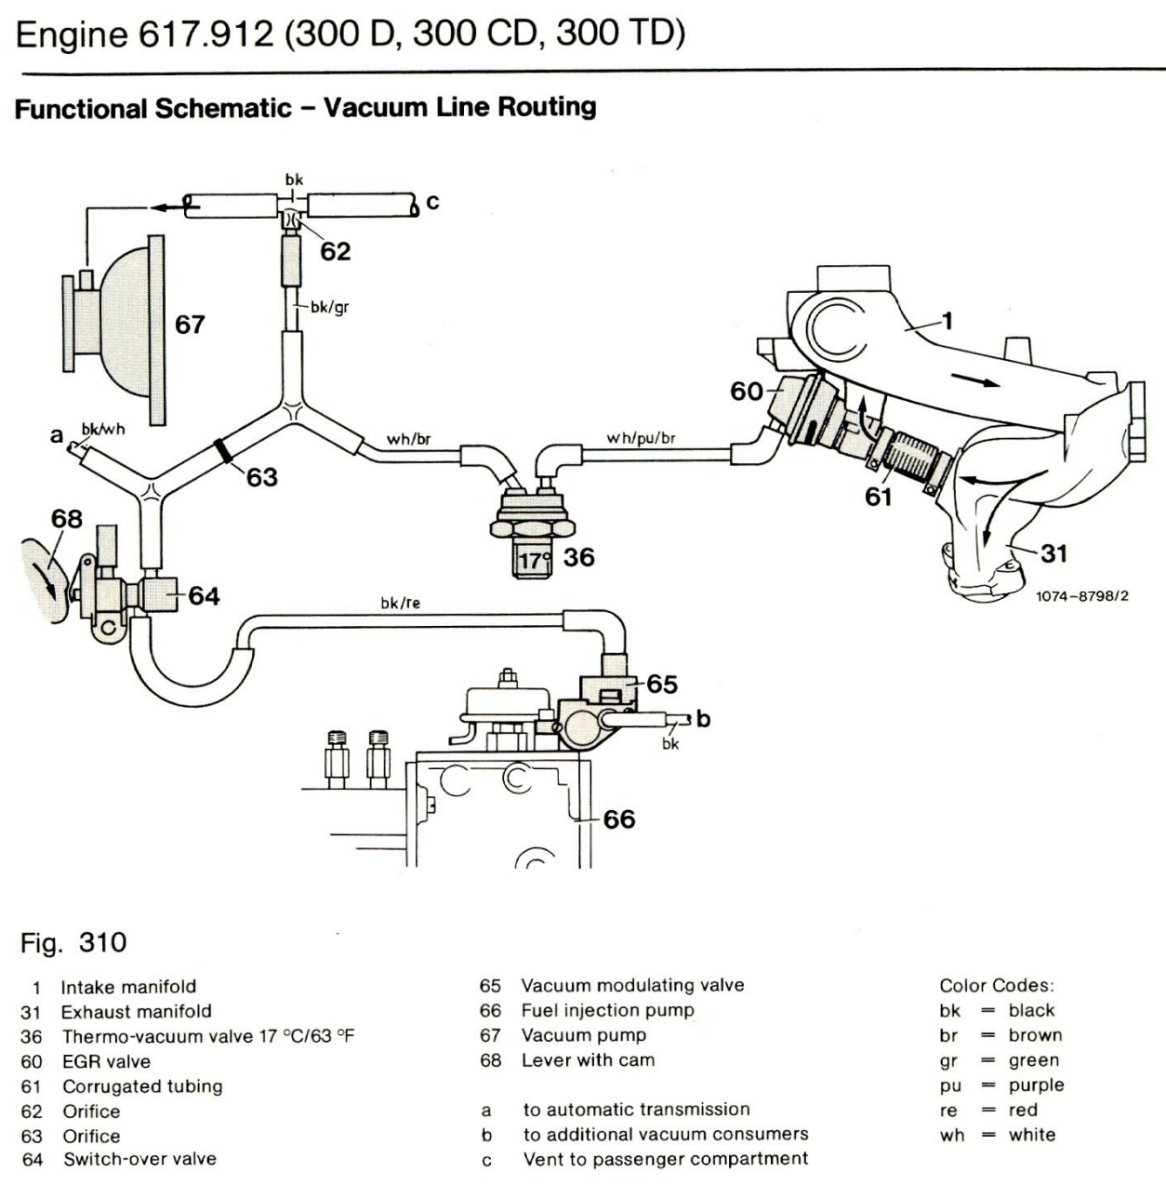 1980 Corvette Vacuum Diagram http://www.benzworld.org/forums/w123-e-ce-d-cd-td/1565035-vacuum-help-2.html